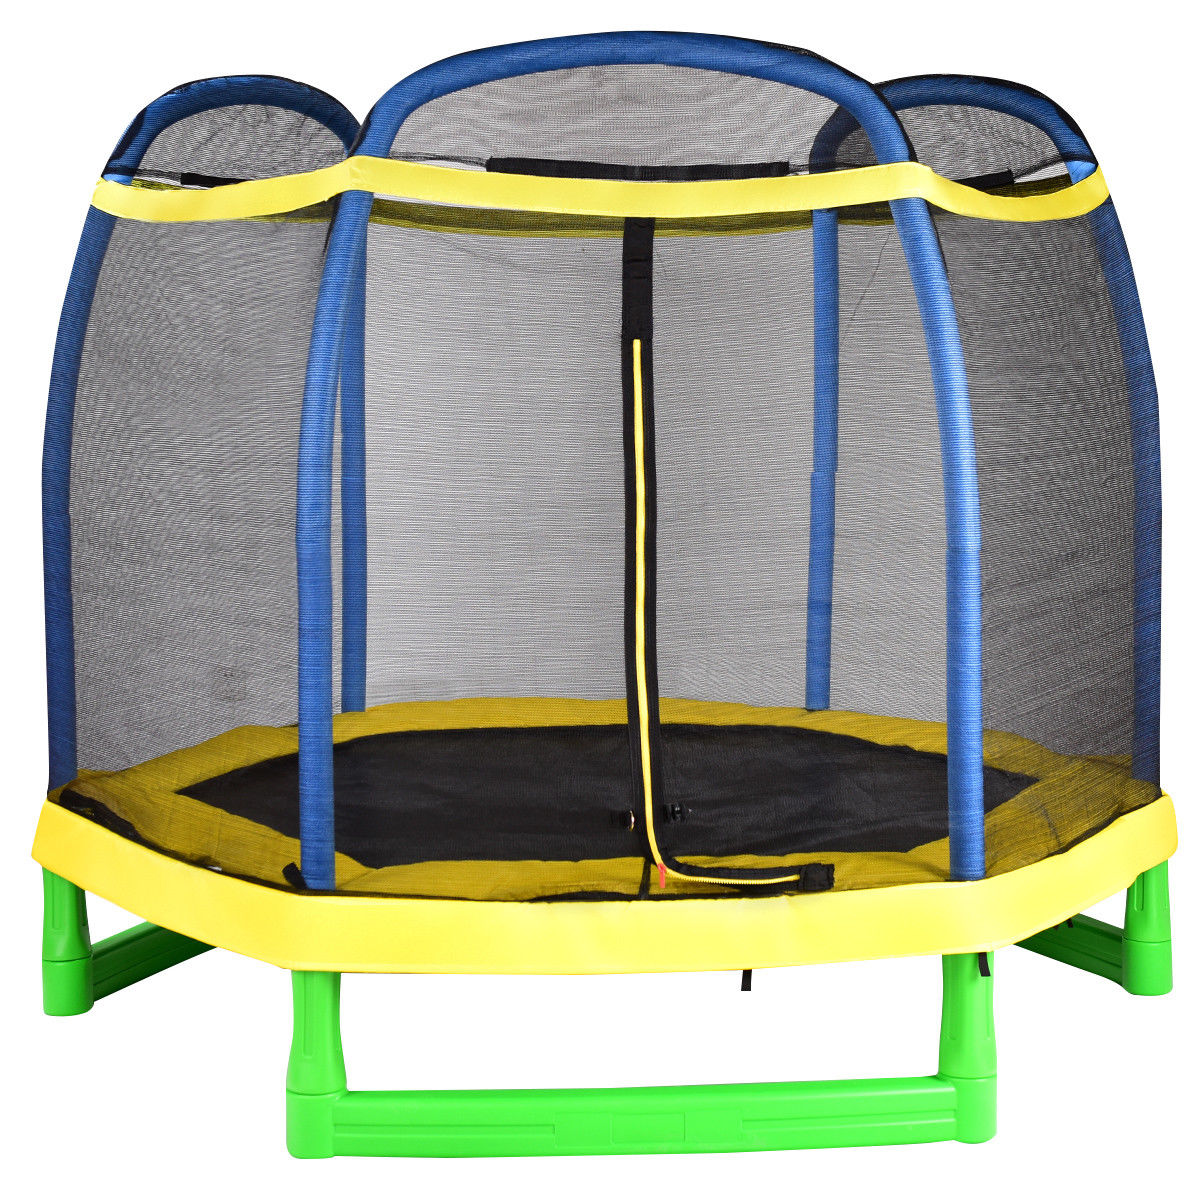 7' Youth Jumping Trampoline Combo Outdoor Bouncer Kids Exercise With Safety Net